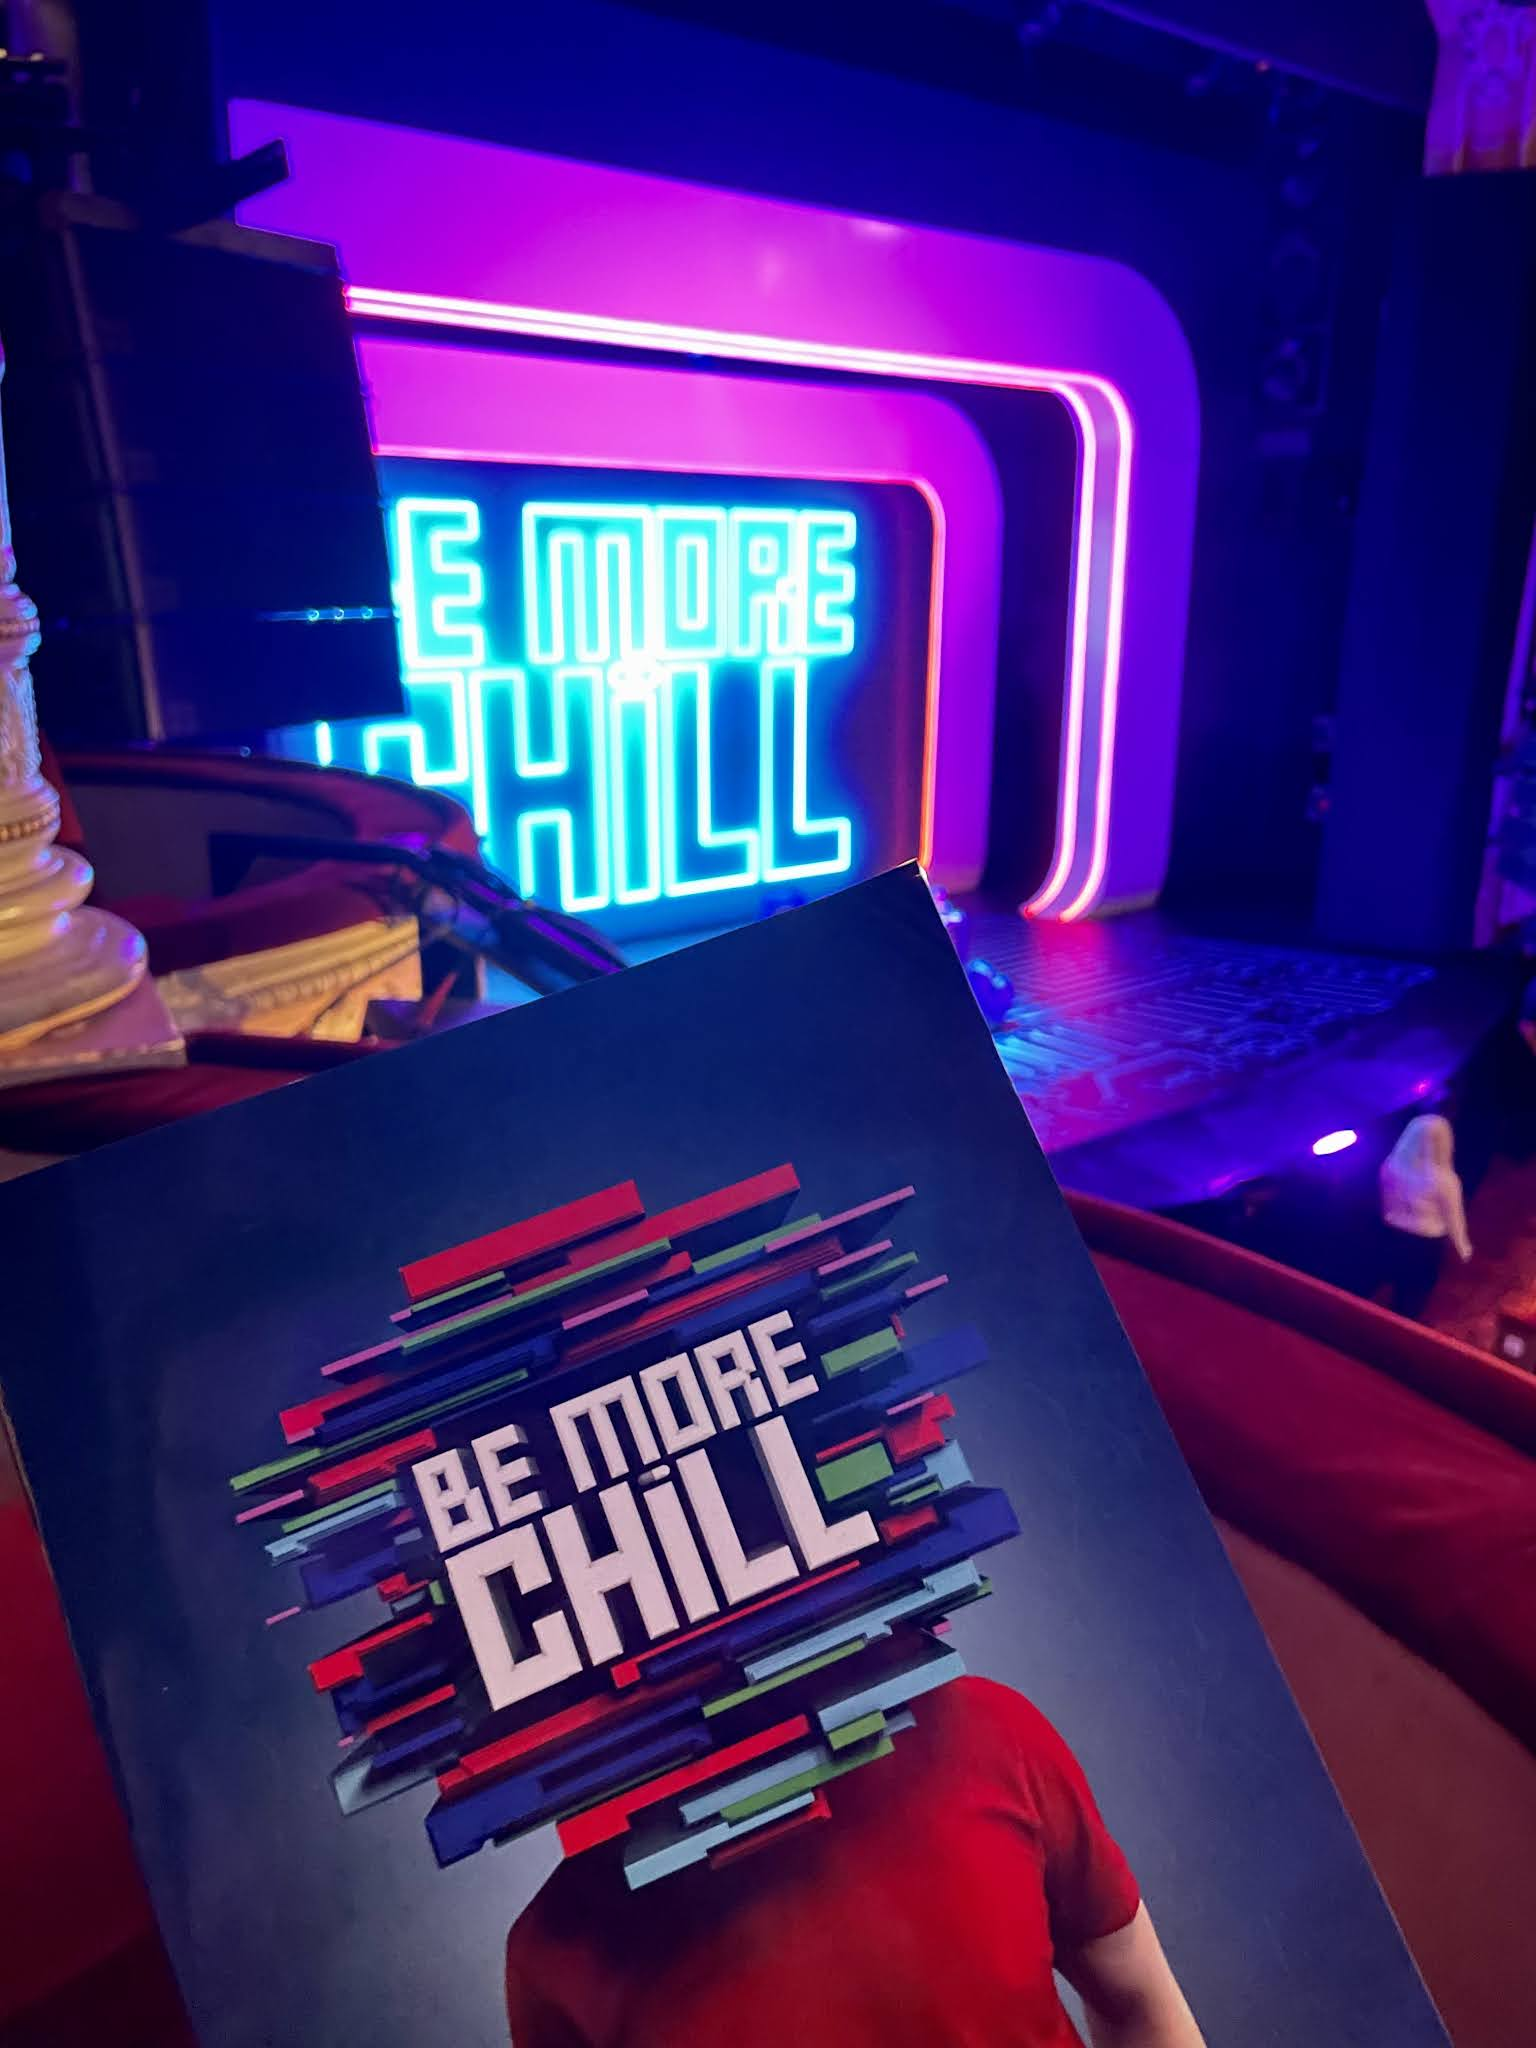 The programme for Be More Chill the musical is being held up in front of the stage.